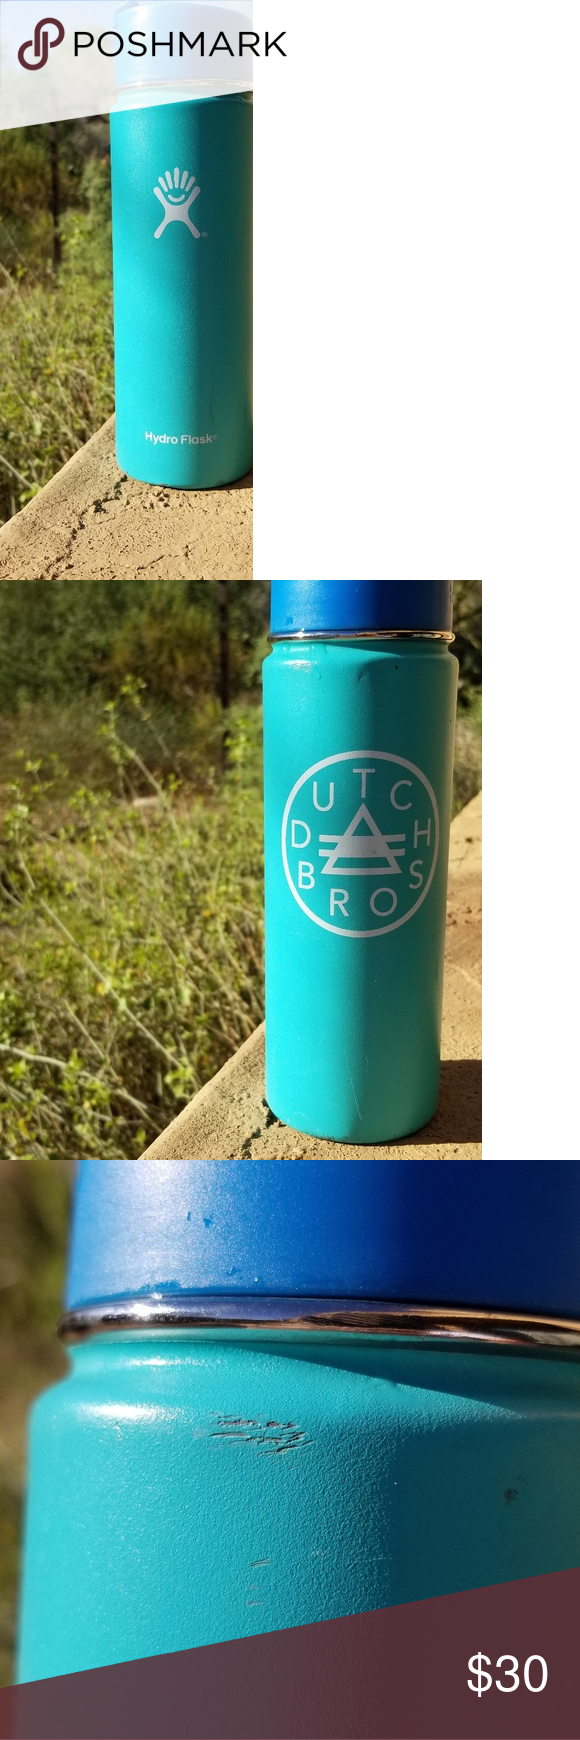 Turquoise Hydroflask 20 oz Dutch Bros Turquoise Dutch Bros Hydroflask 20 oz with a flip top lid. 1 small dent on the bottom along with a few scratches. Flip top lid has small crack on flip top. Hydroflask Other #dutchbros Turquoise Hydroflask 20 oz Dutch Bros Turquoise Dutch Bros Hydroflask 20 oz with a flip top lid. 1 small dent on the bottom along with a few scratches. Flip top lid has small crack on flip top. Hydroflask Other #dutchbros Turquoise Hydroflask 20 oz Dutch Bros Turquoise Dutch Br #dutchbros